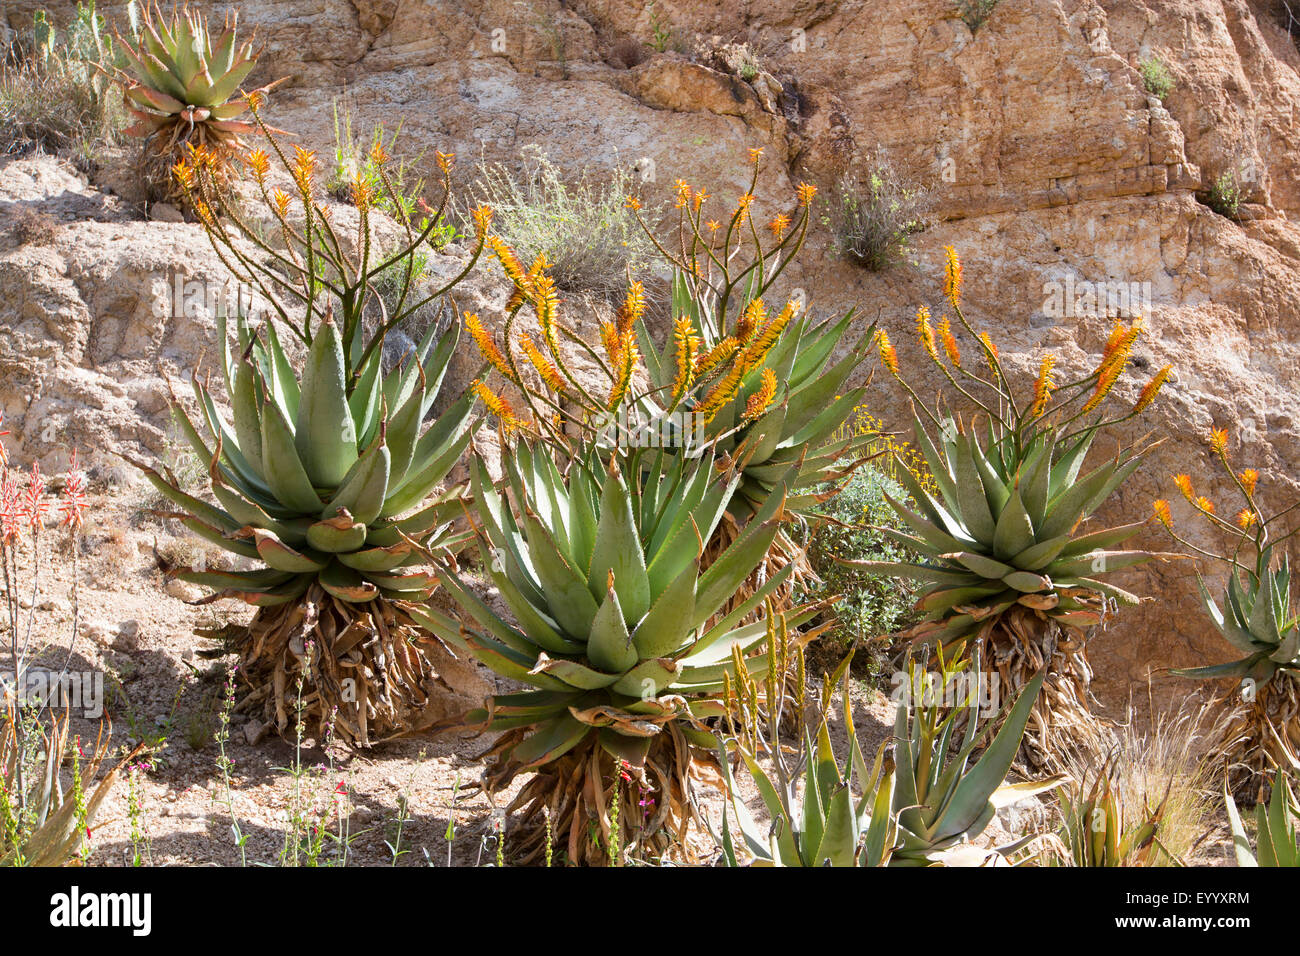 Mountain Aloe, Flat flowerd Aloe, Large Spiny Aloe (Aloe marlothii), flowering group at a rock wall, USA, Arizona, - Stock Image